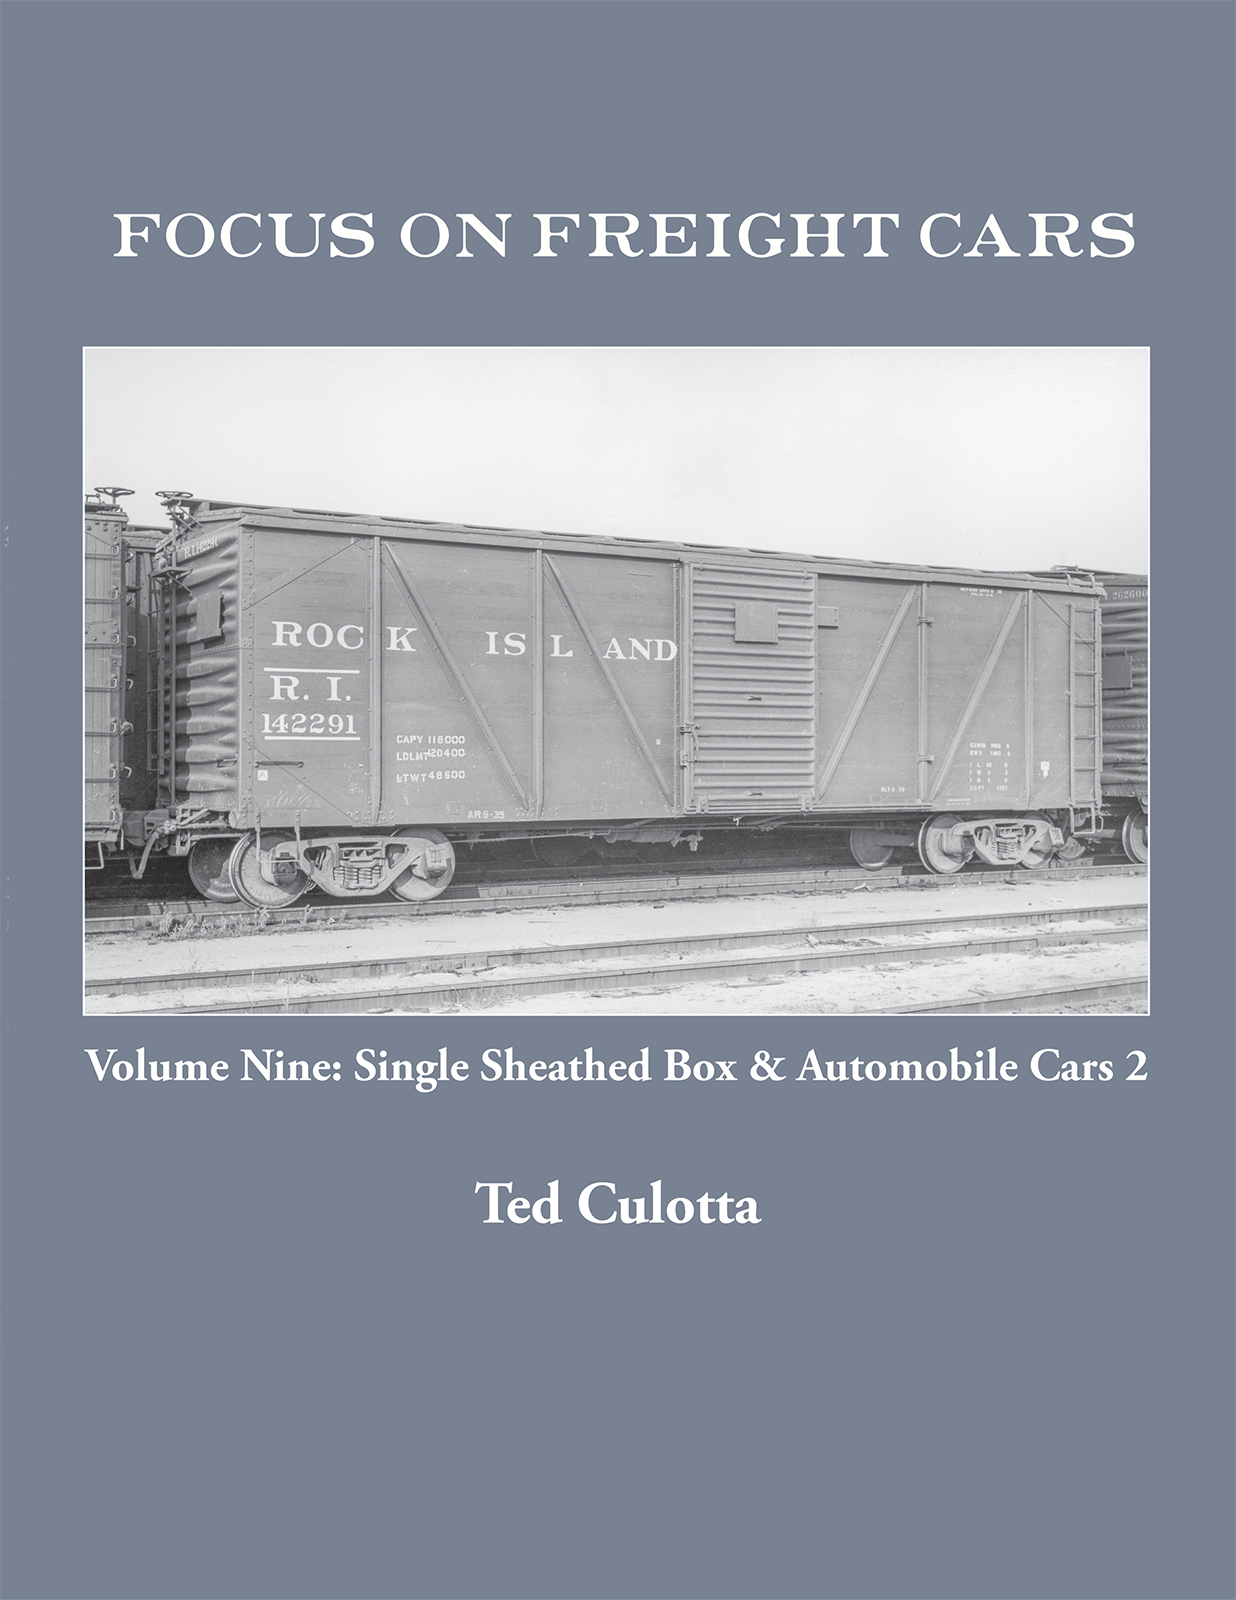 FOCUS ON FREIGHT CARS VOL 9 SINGLE SHEATHED BOX & AUTOMOBILE CARS 2